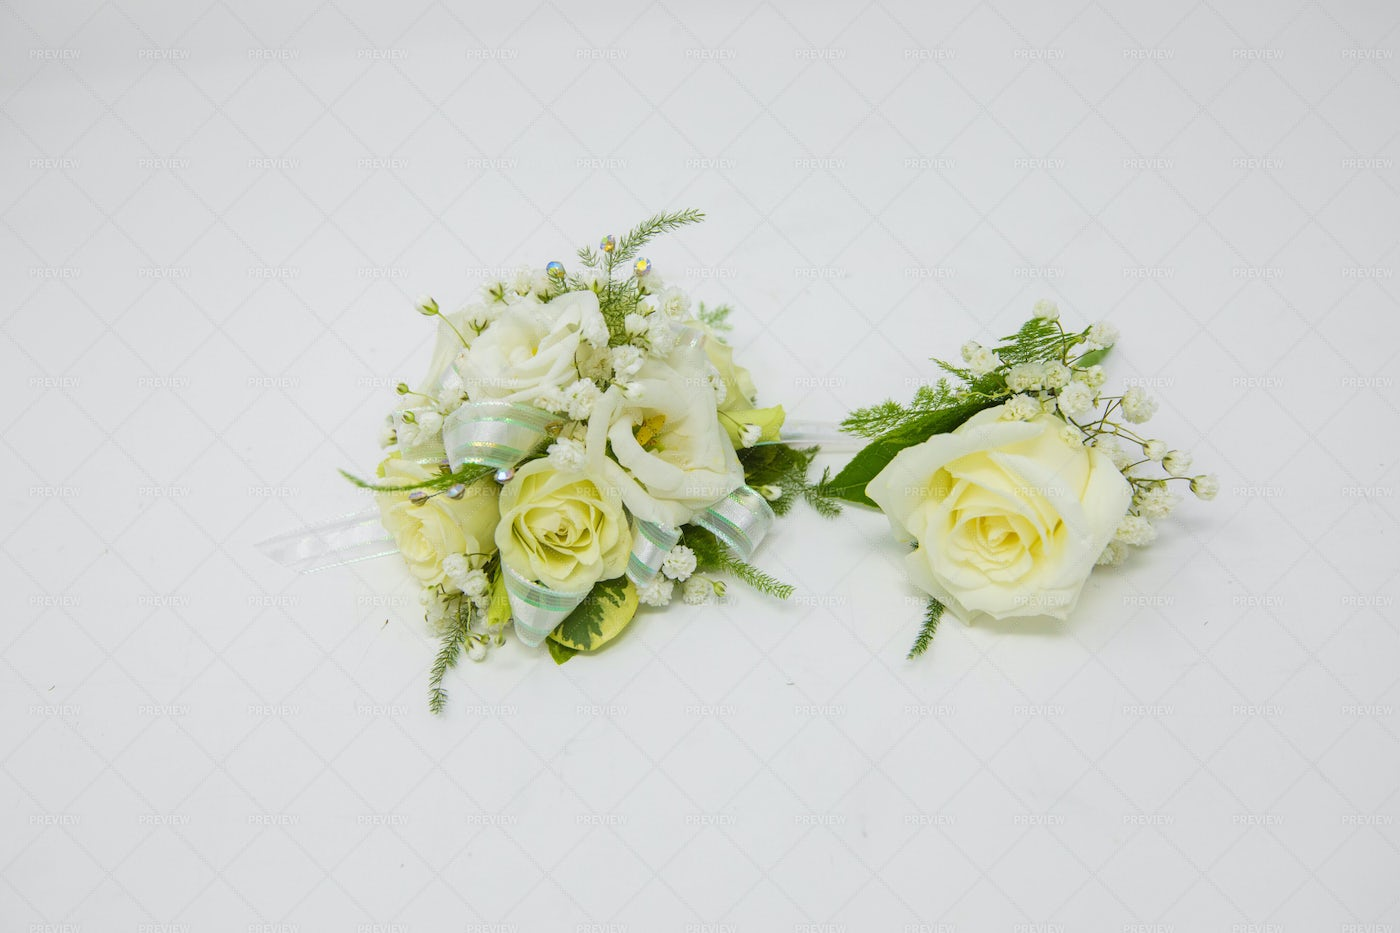 Boutonniere And Corsage: Stock Photos